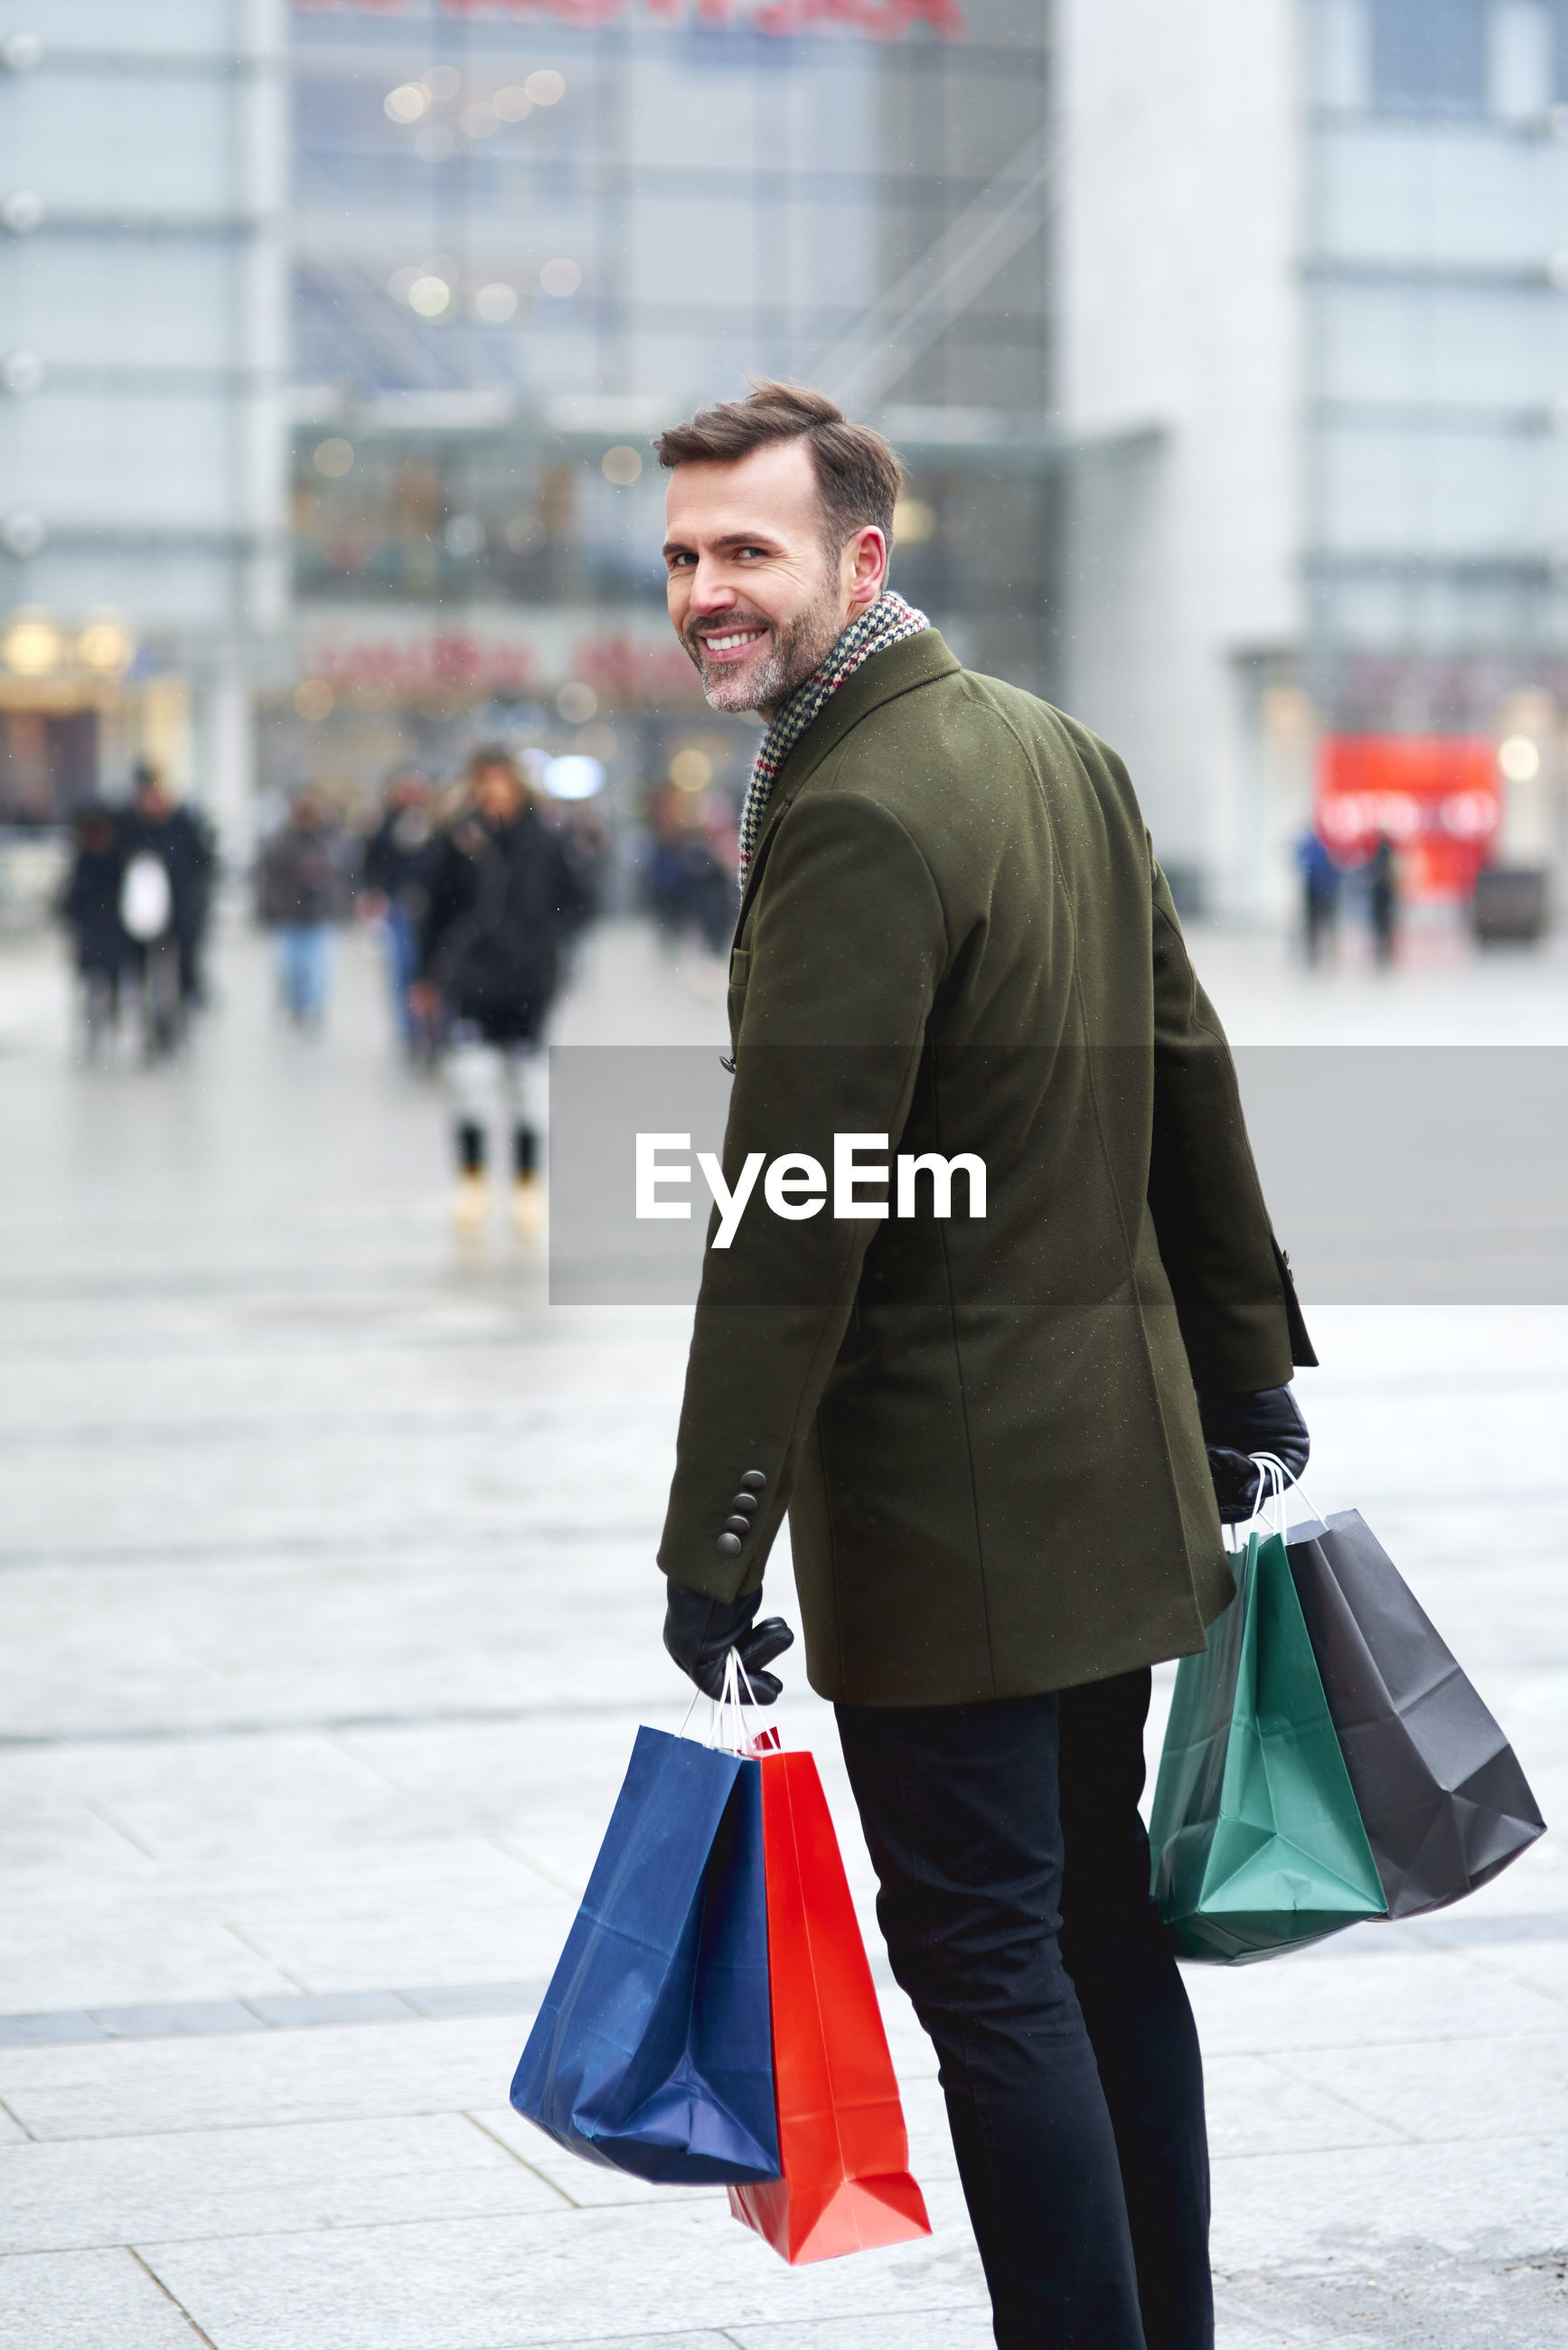 Portrait of man holding shopping bags while standing in city during winter